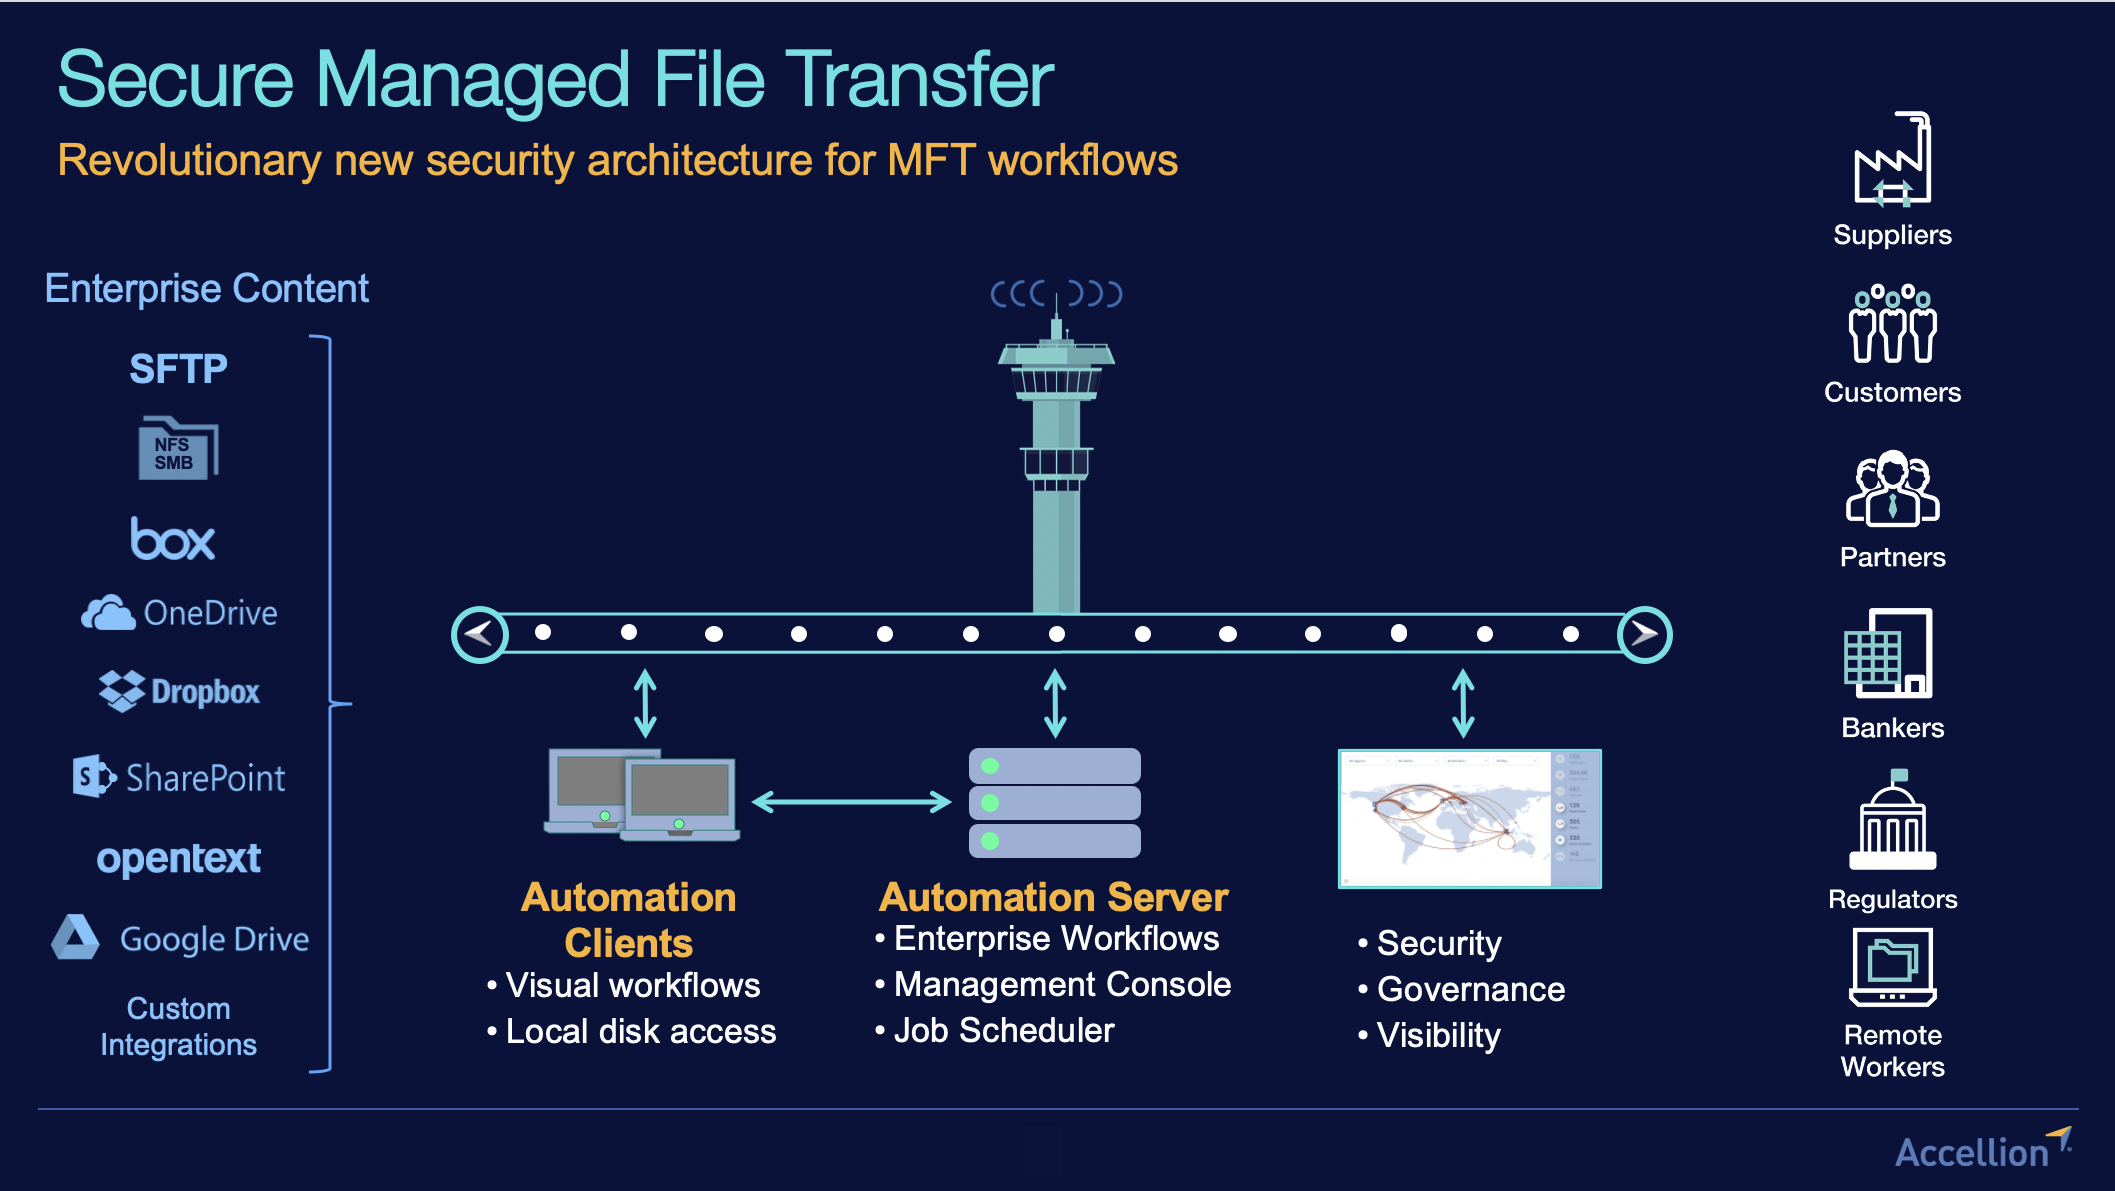 Next Generation Secure Managed File Transfer Solution Overview